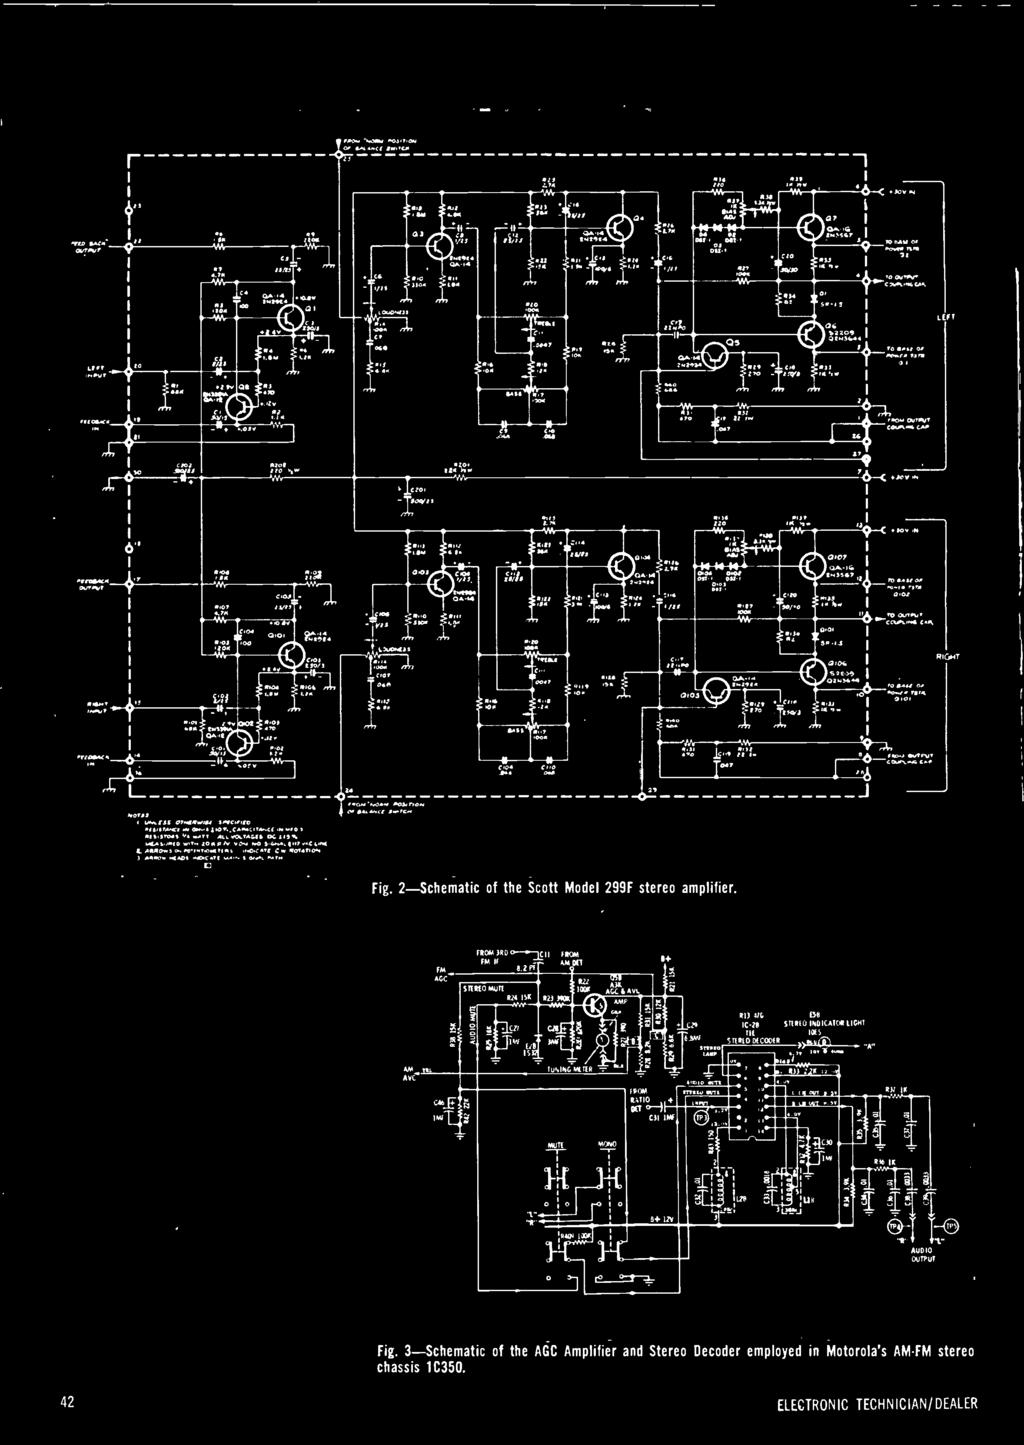 hight resolution of 2 schematic of the scott model 299f stereo amplifier fm aoc froa dd 0